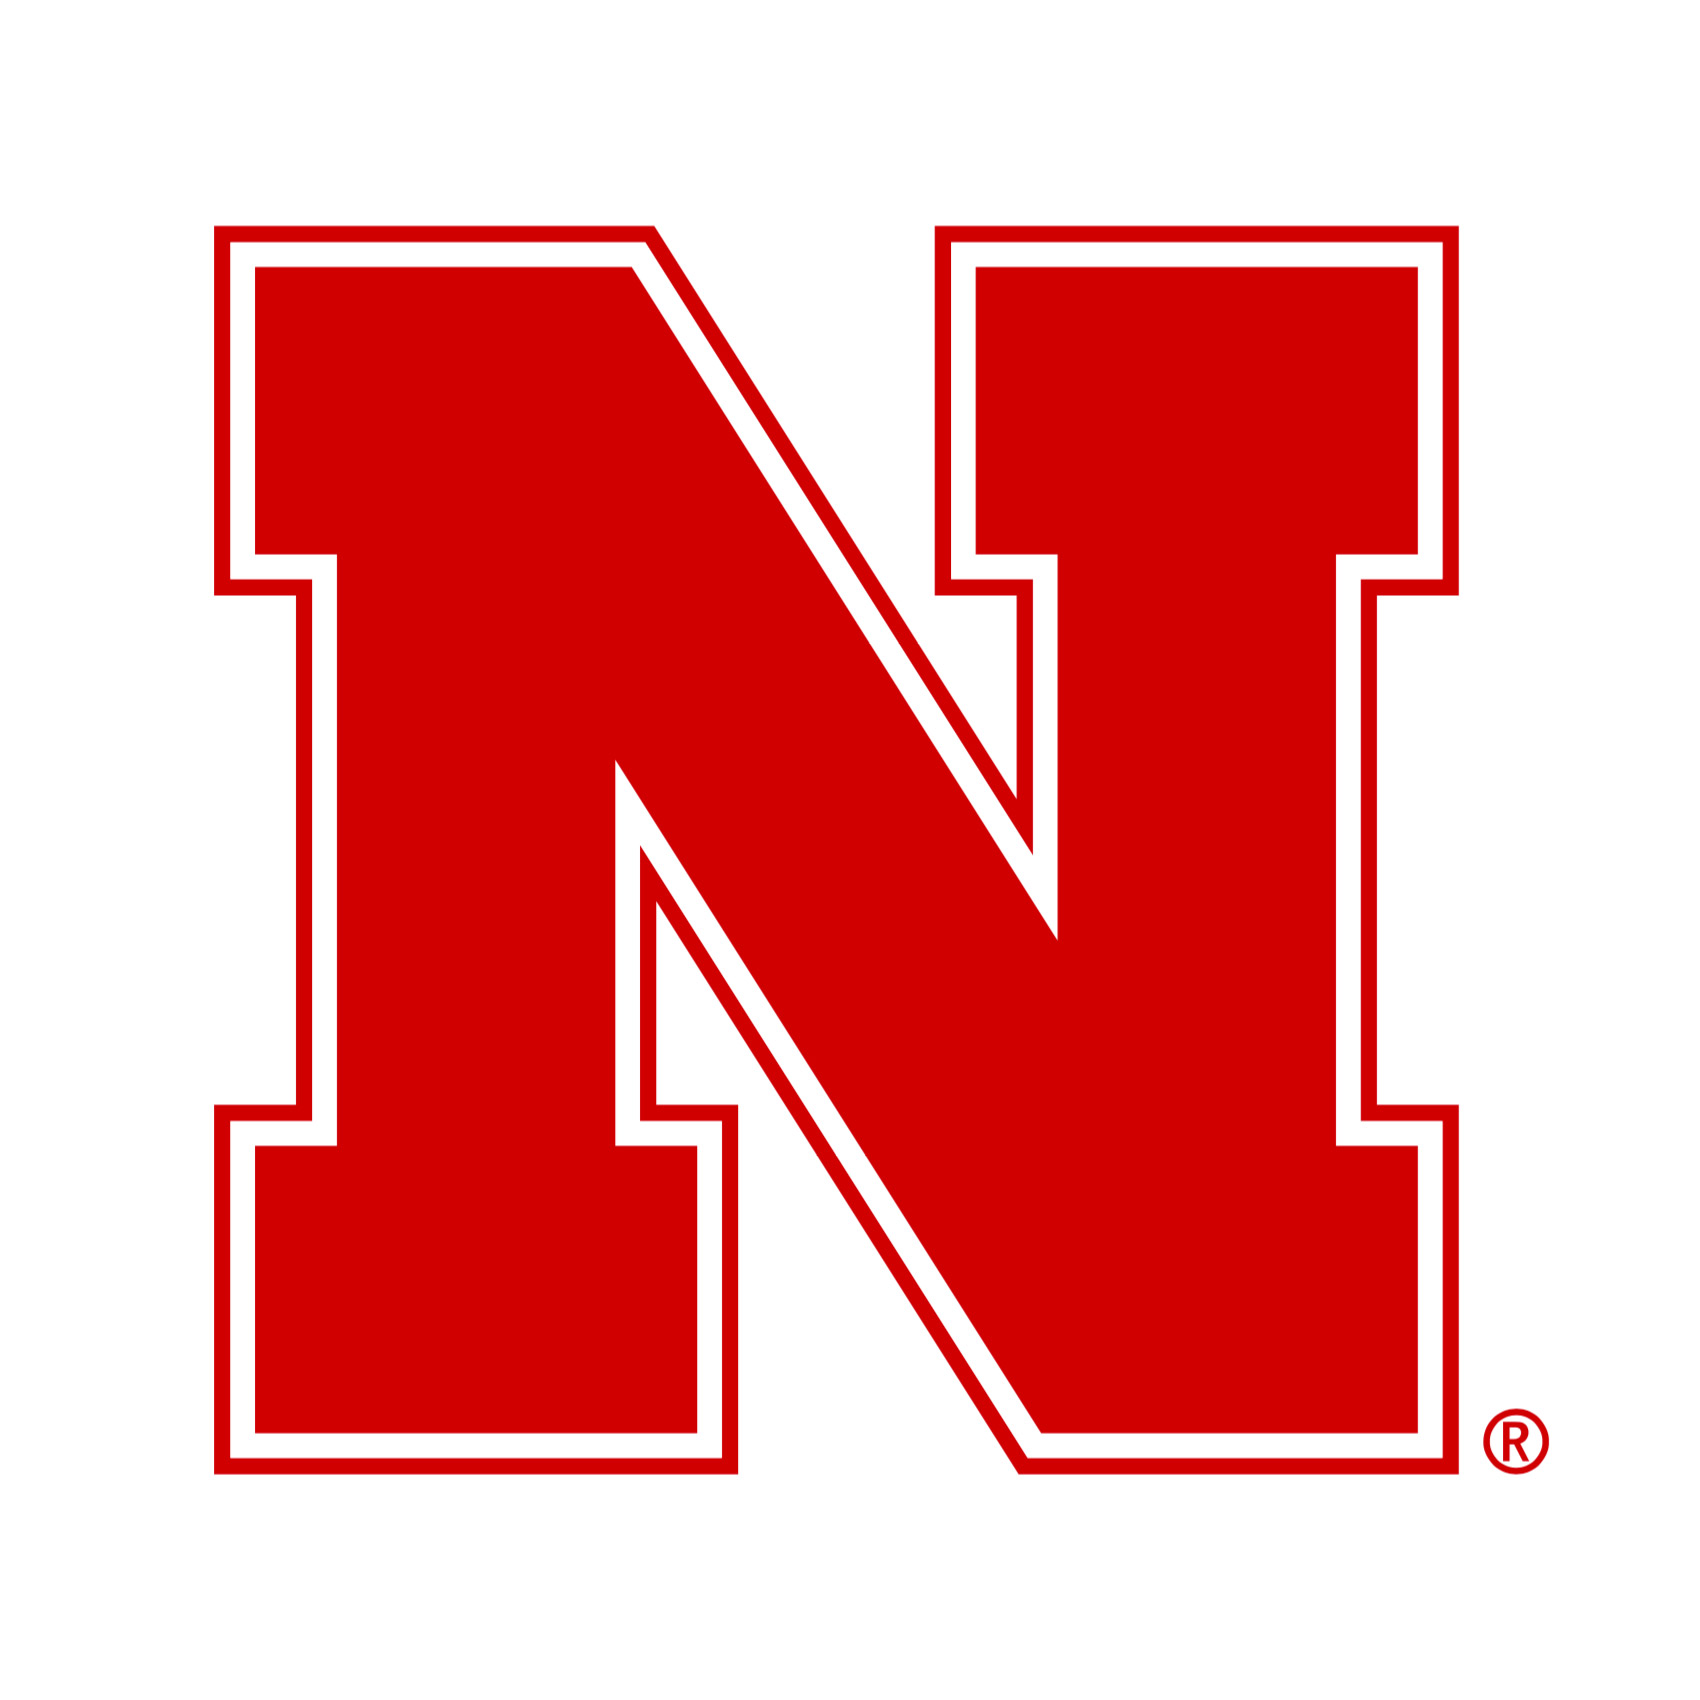 Nebraska N campus icon